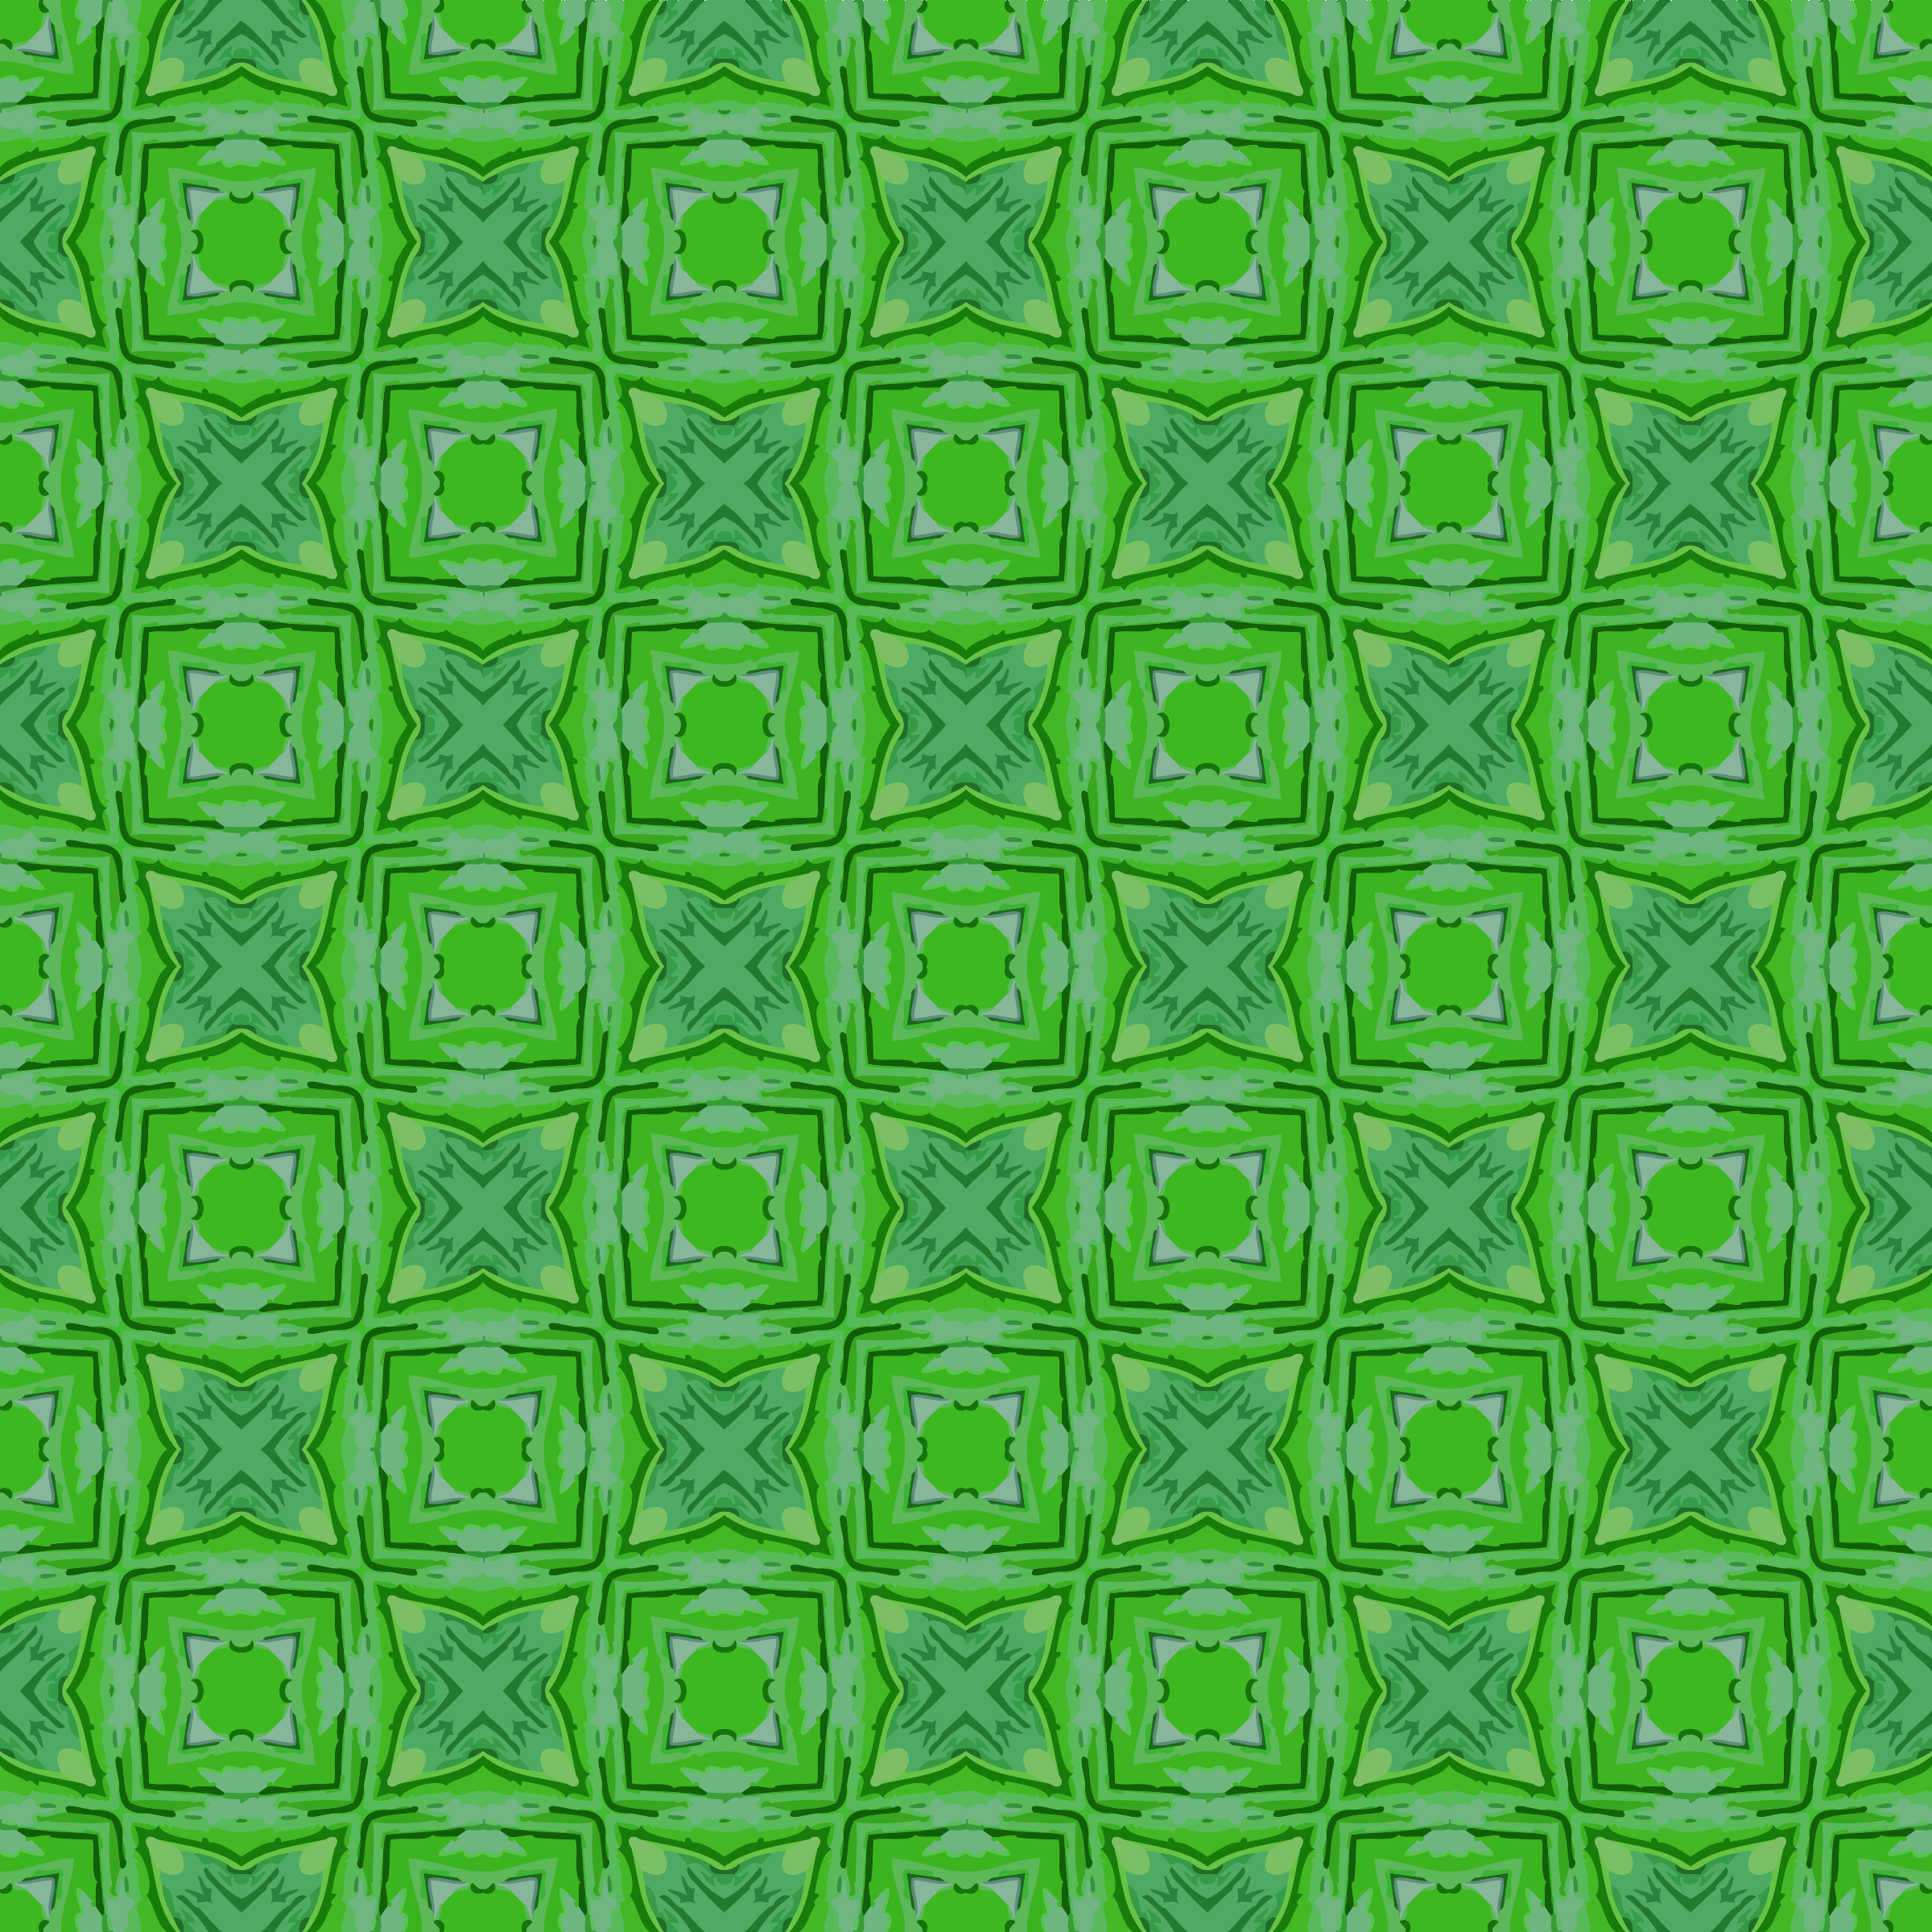 Background pattern 170 (colour 4) by Firkin